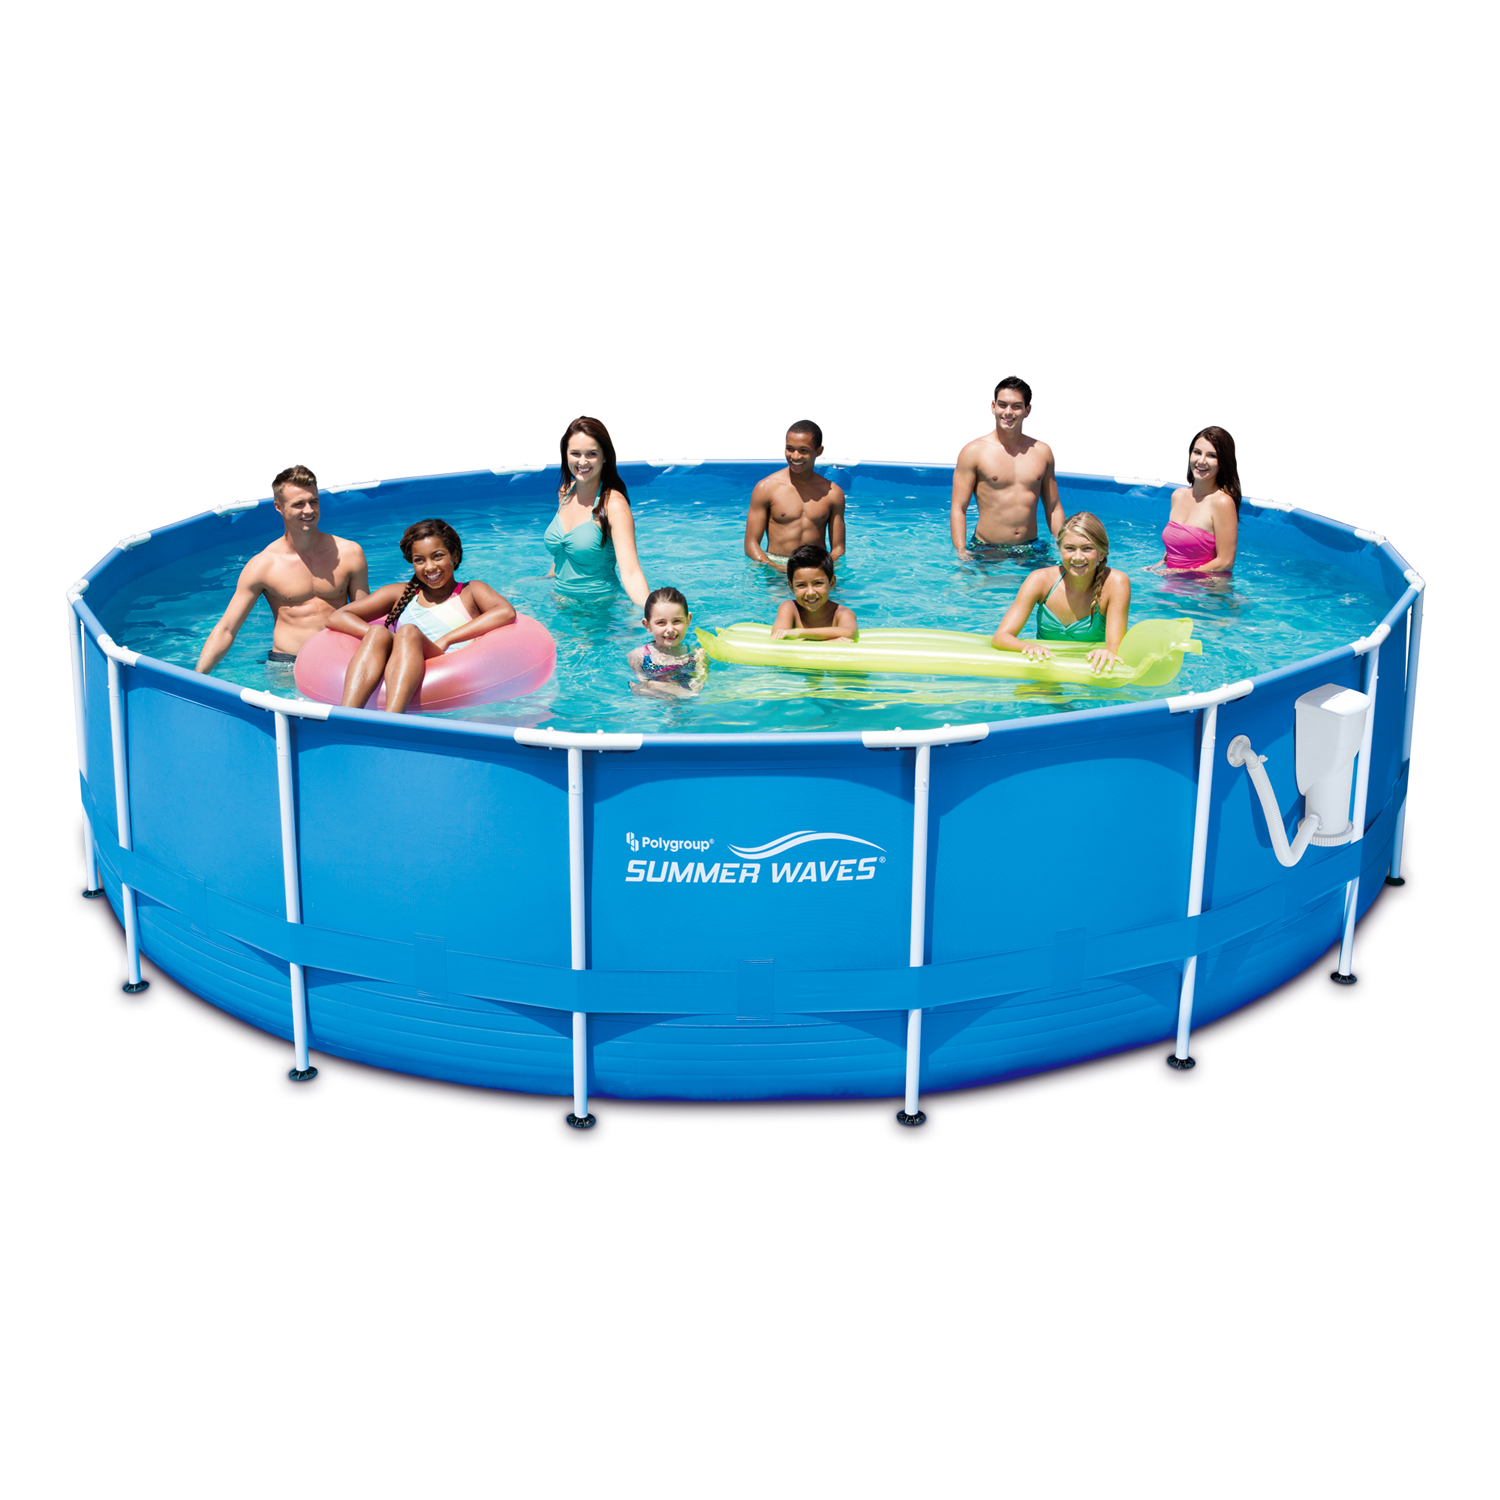 "Summer Waves 18' x 48"" Metal Frame Above Ground Swimming Pool with Filter Pump System And Deluxe Accessory Set"